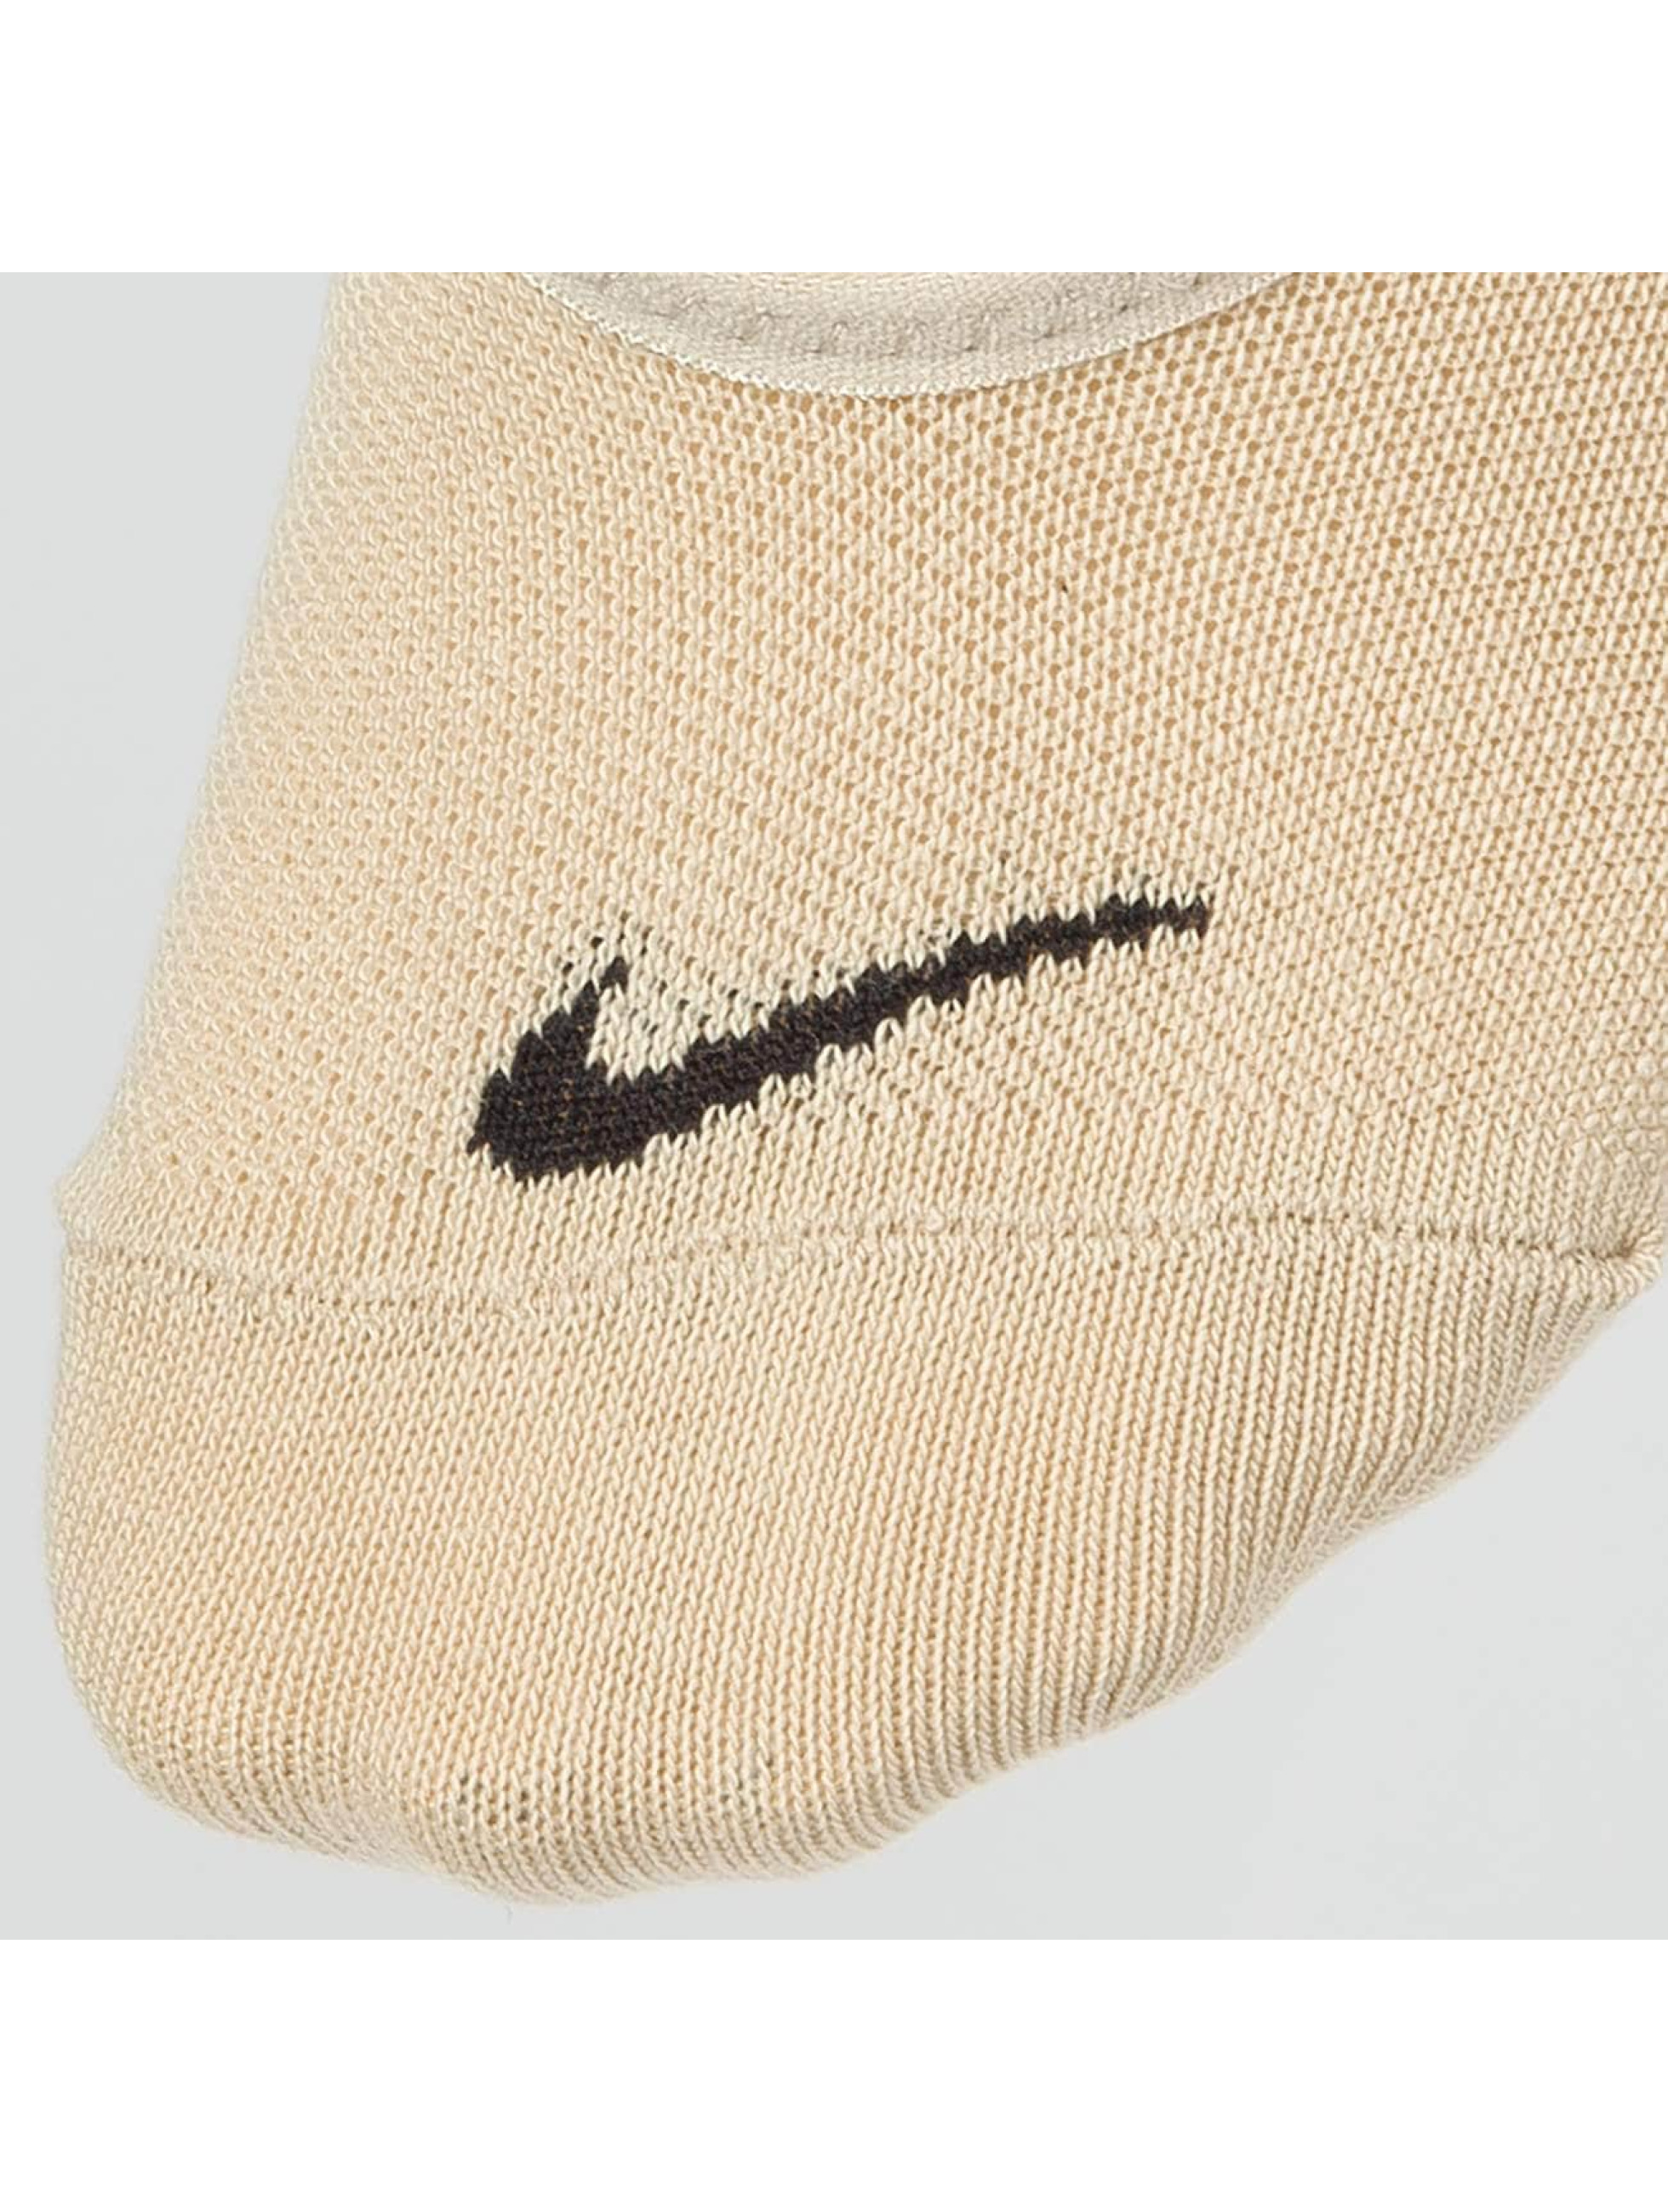 Nike Performance Calcetines Everyday Lightweight Footie Training 3 Pack colorido